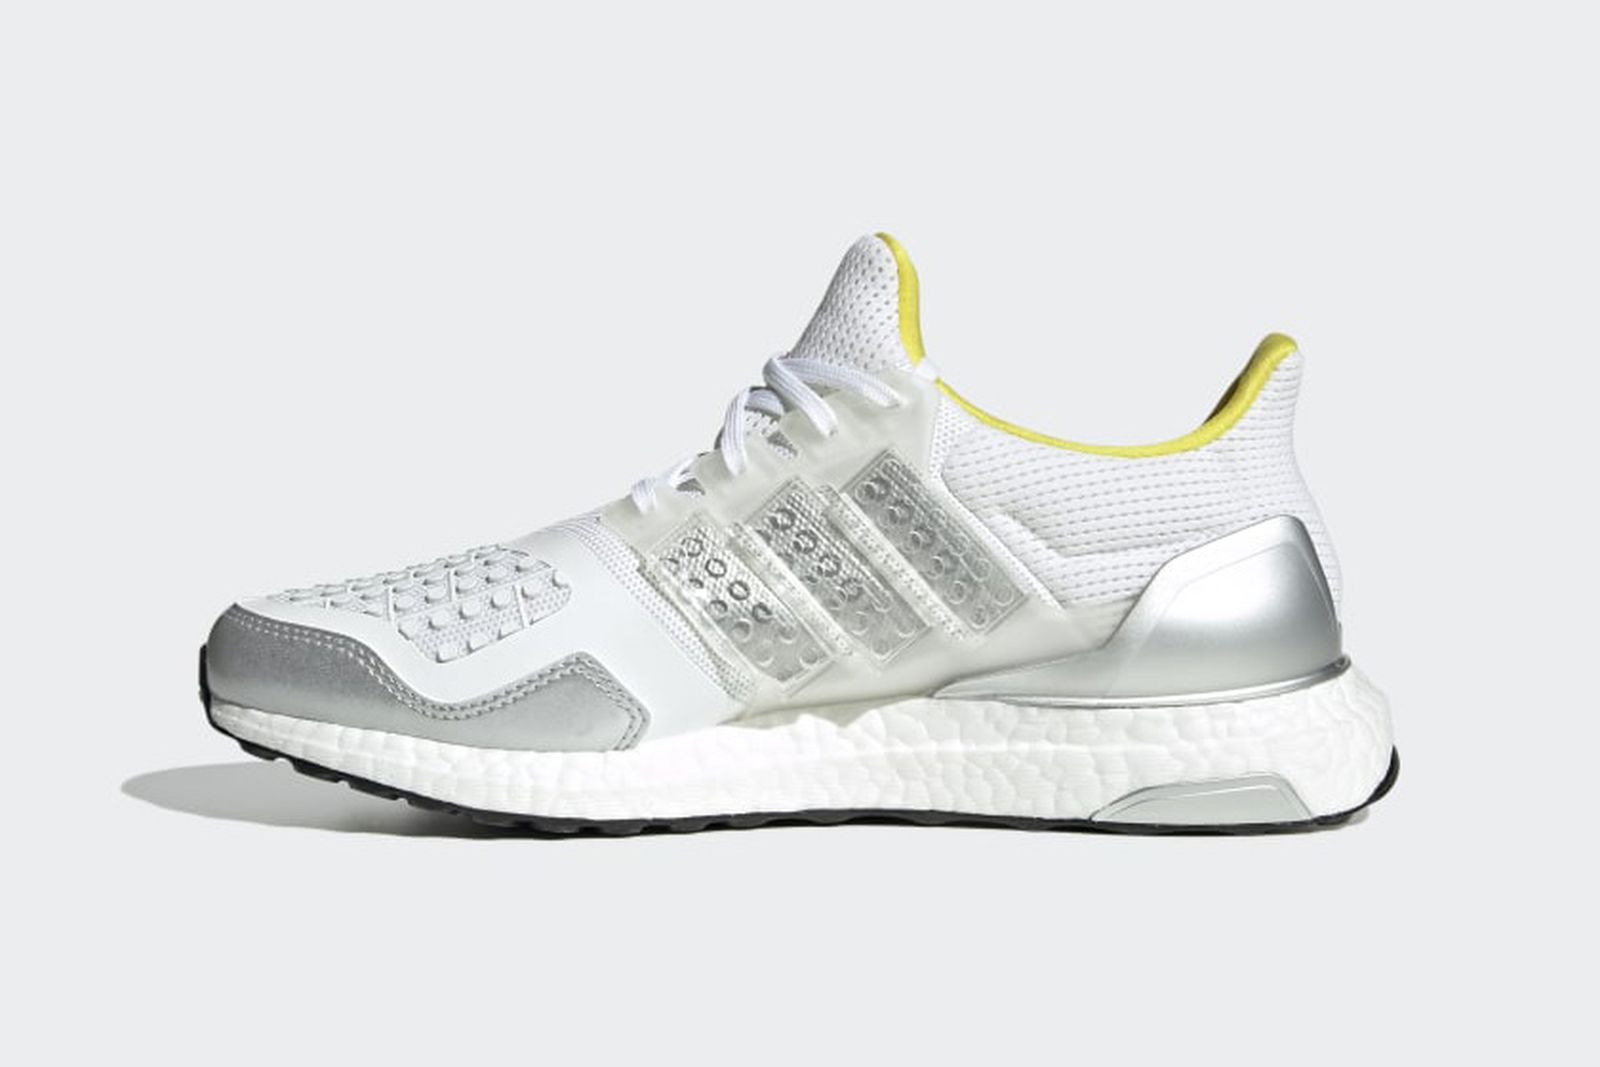 lego-adidas-ultraboost-dna-release-date-price-07